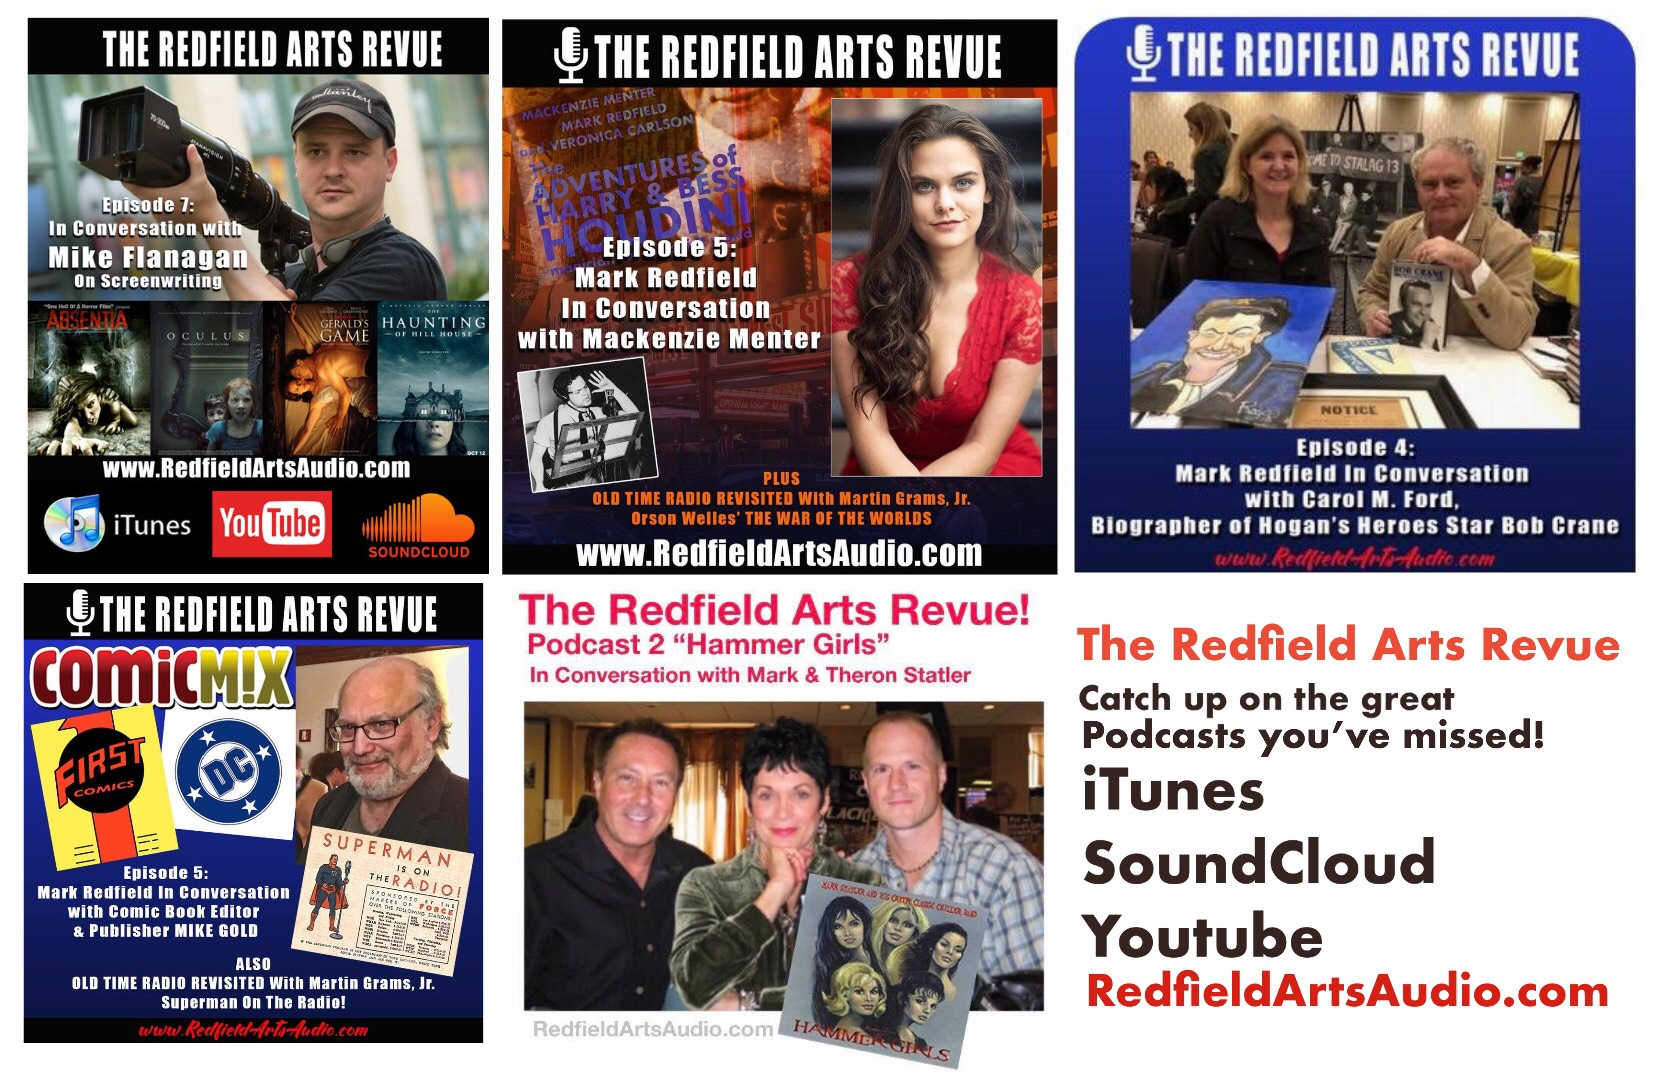 The Redfield Arts Revue